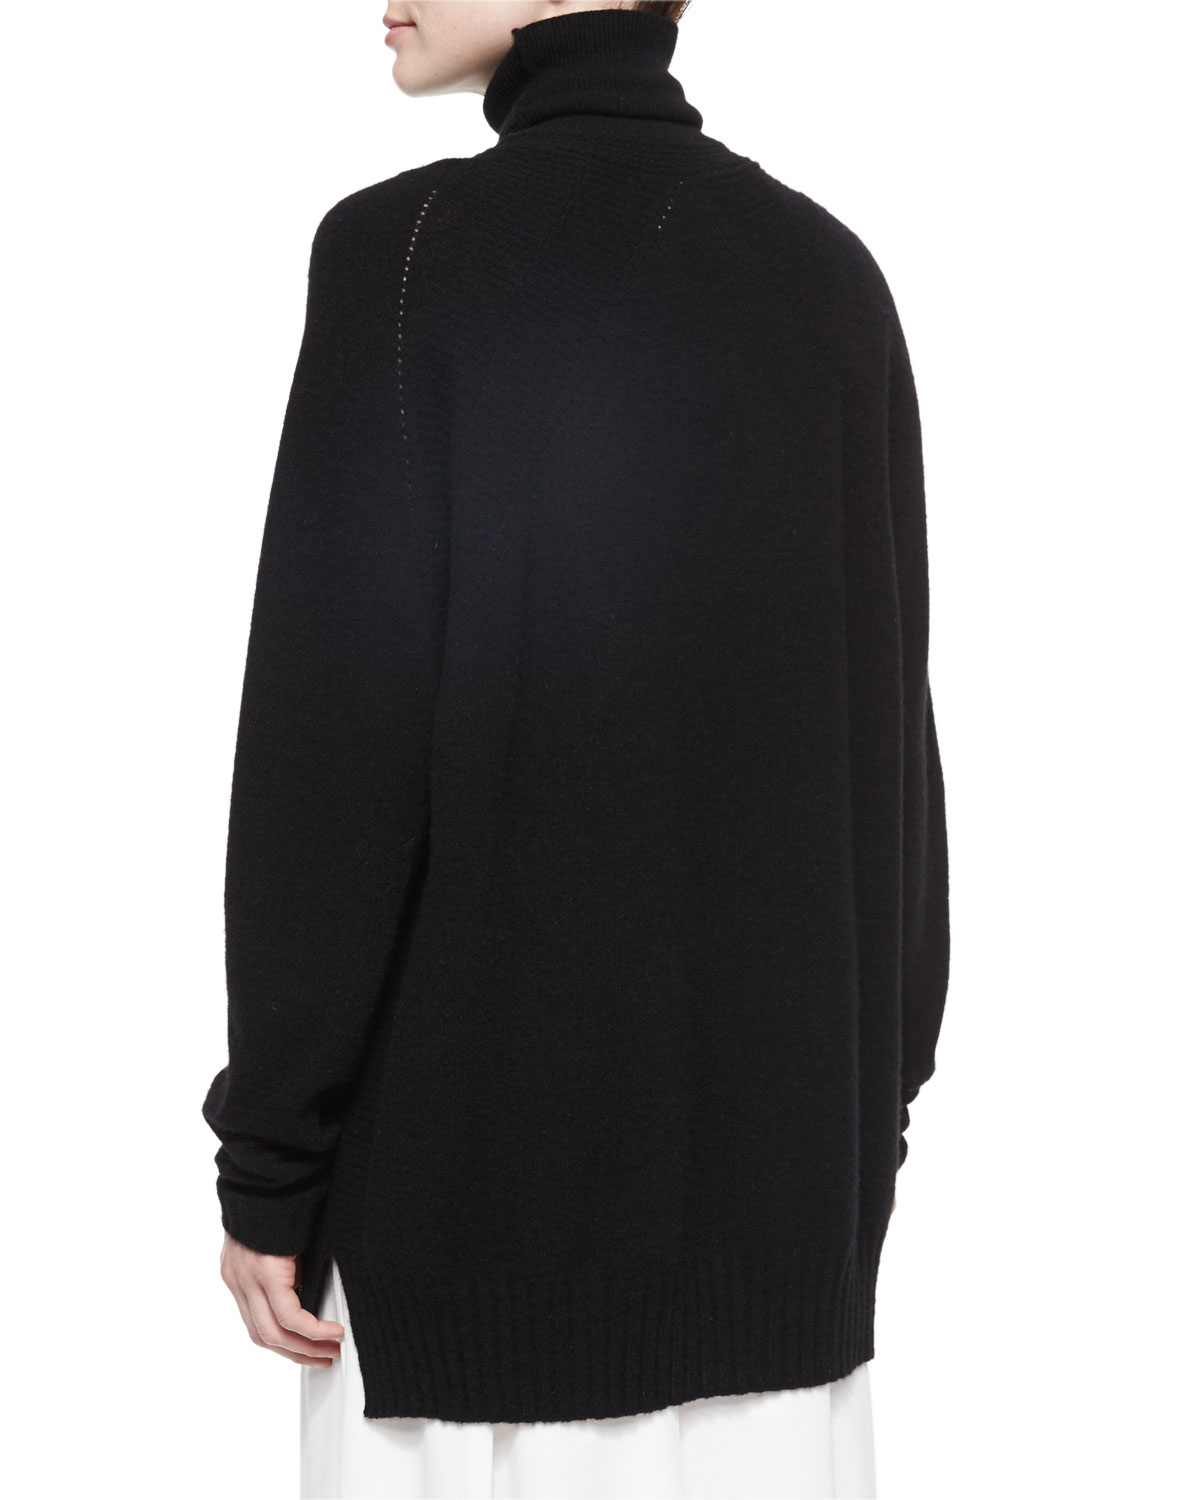 Belstaff Oversized Turtleneck Tunic Sweater in Black | Lyst